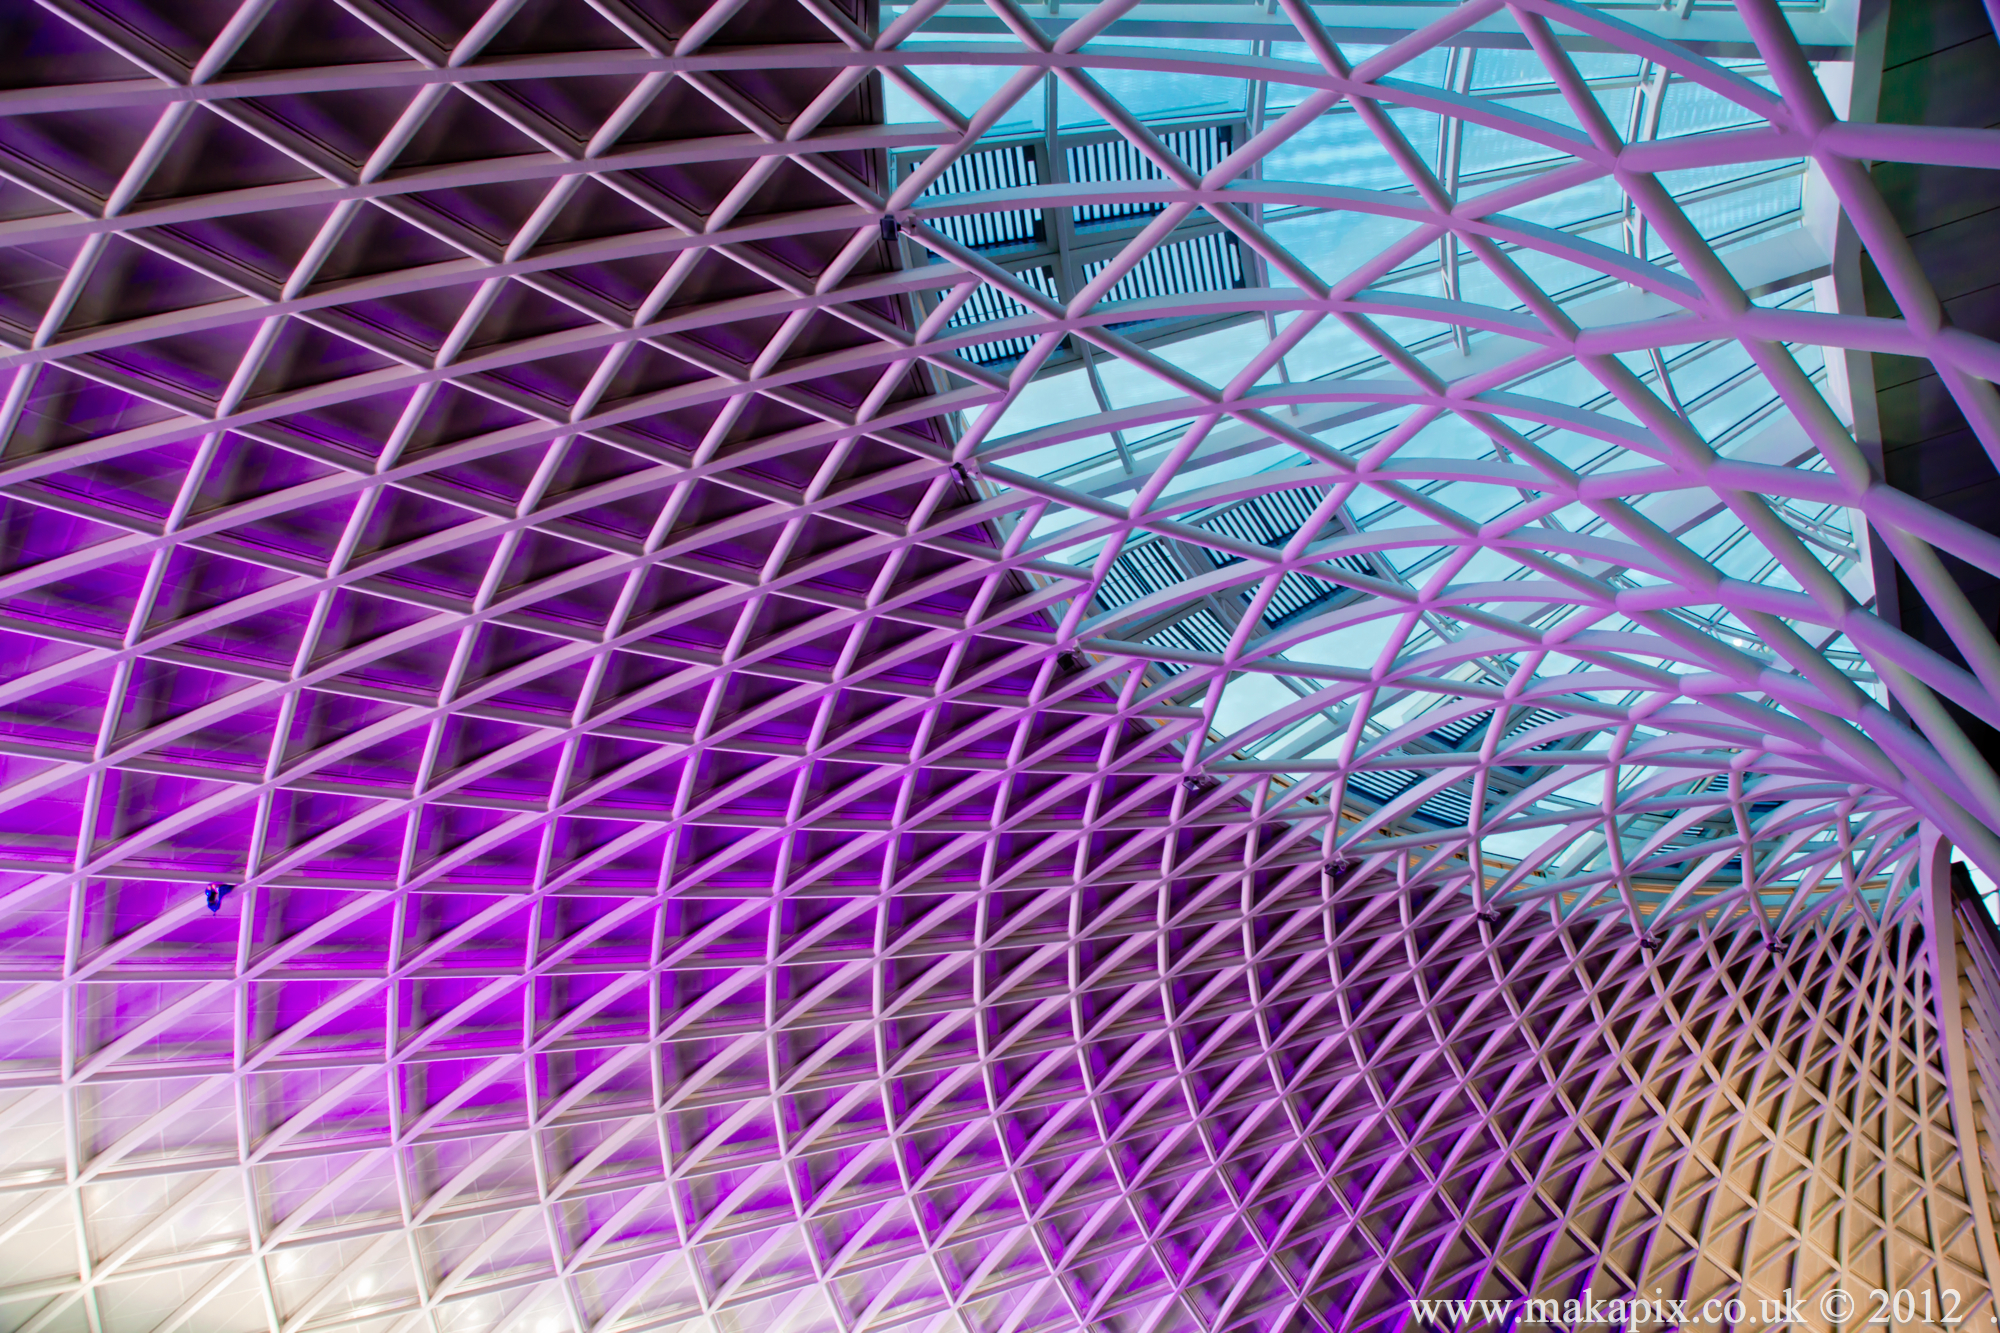 King's Cross station diagrid roof, London, England